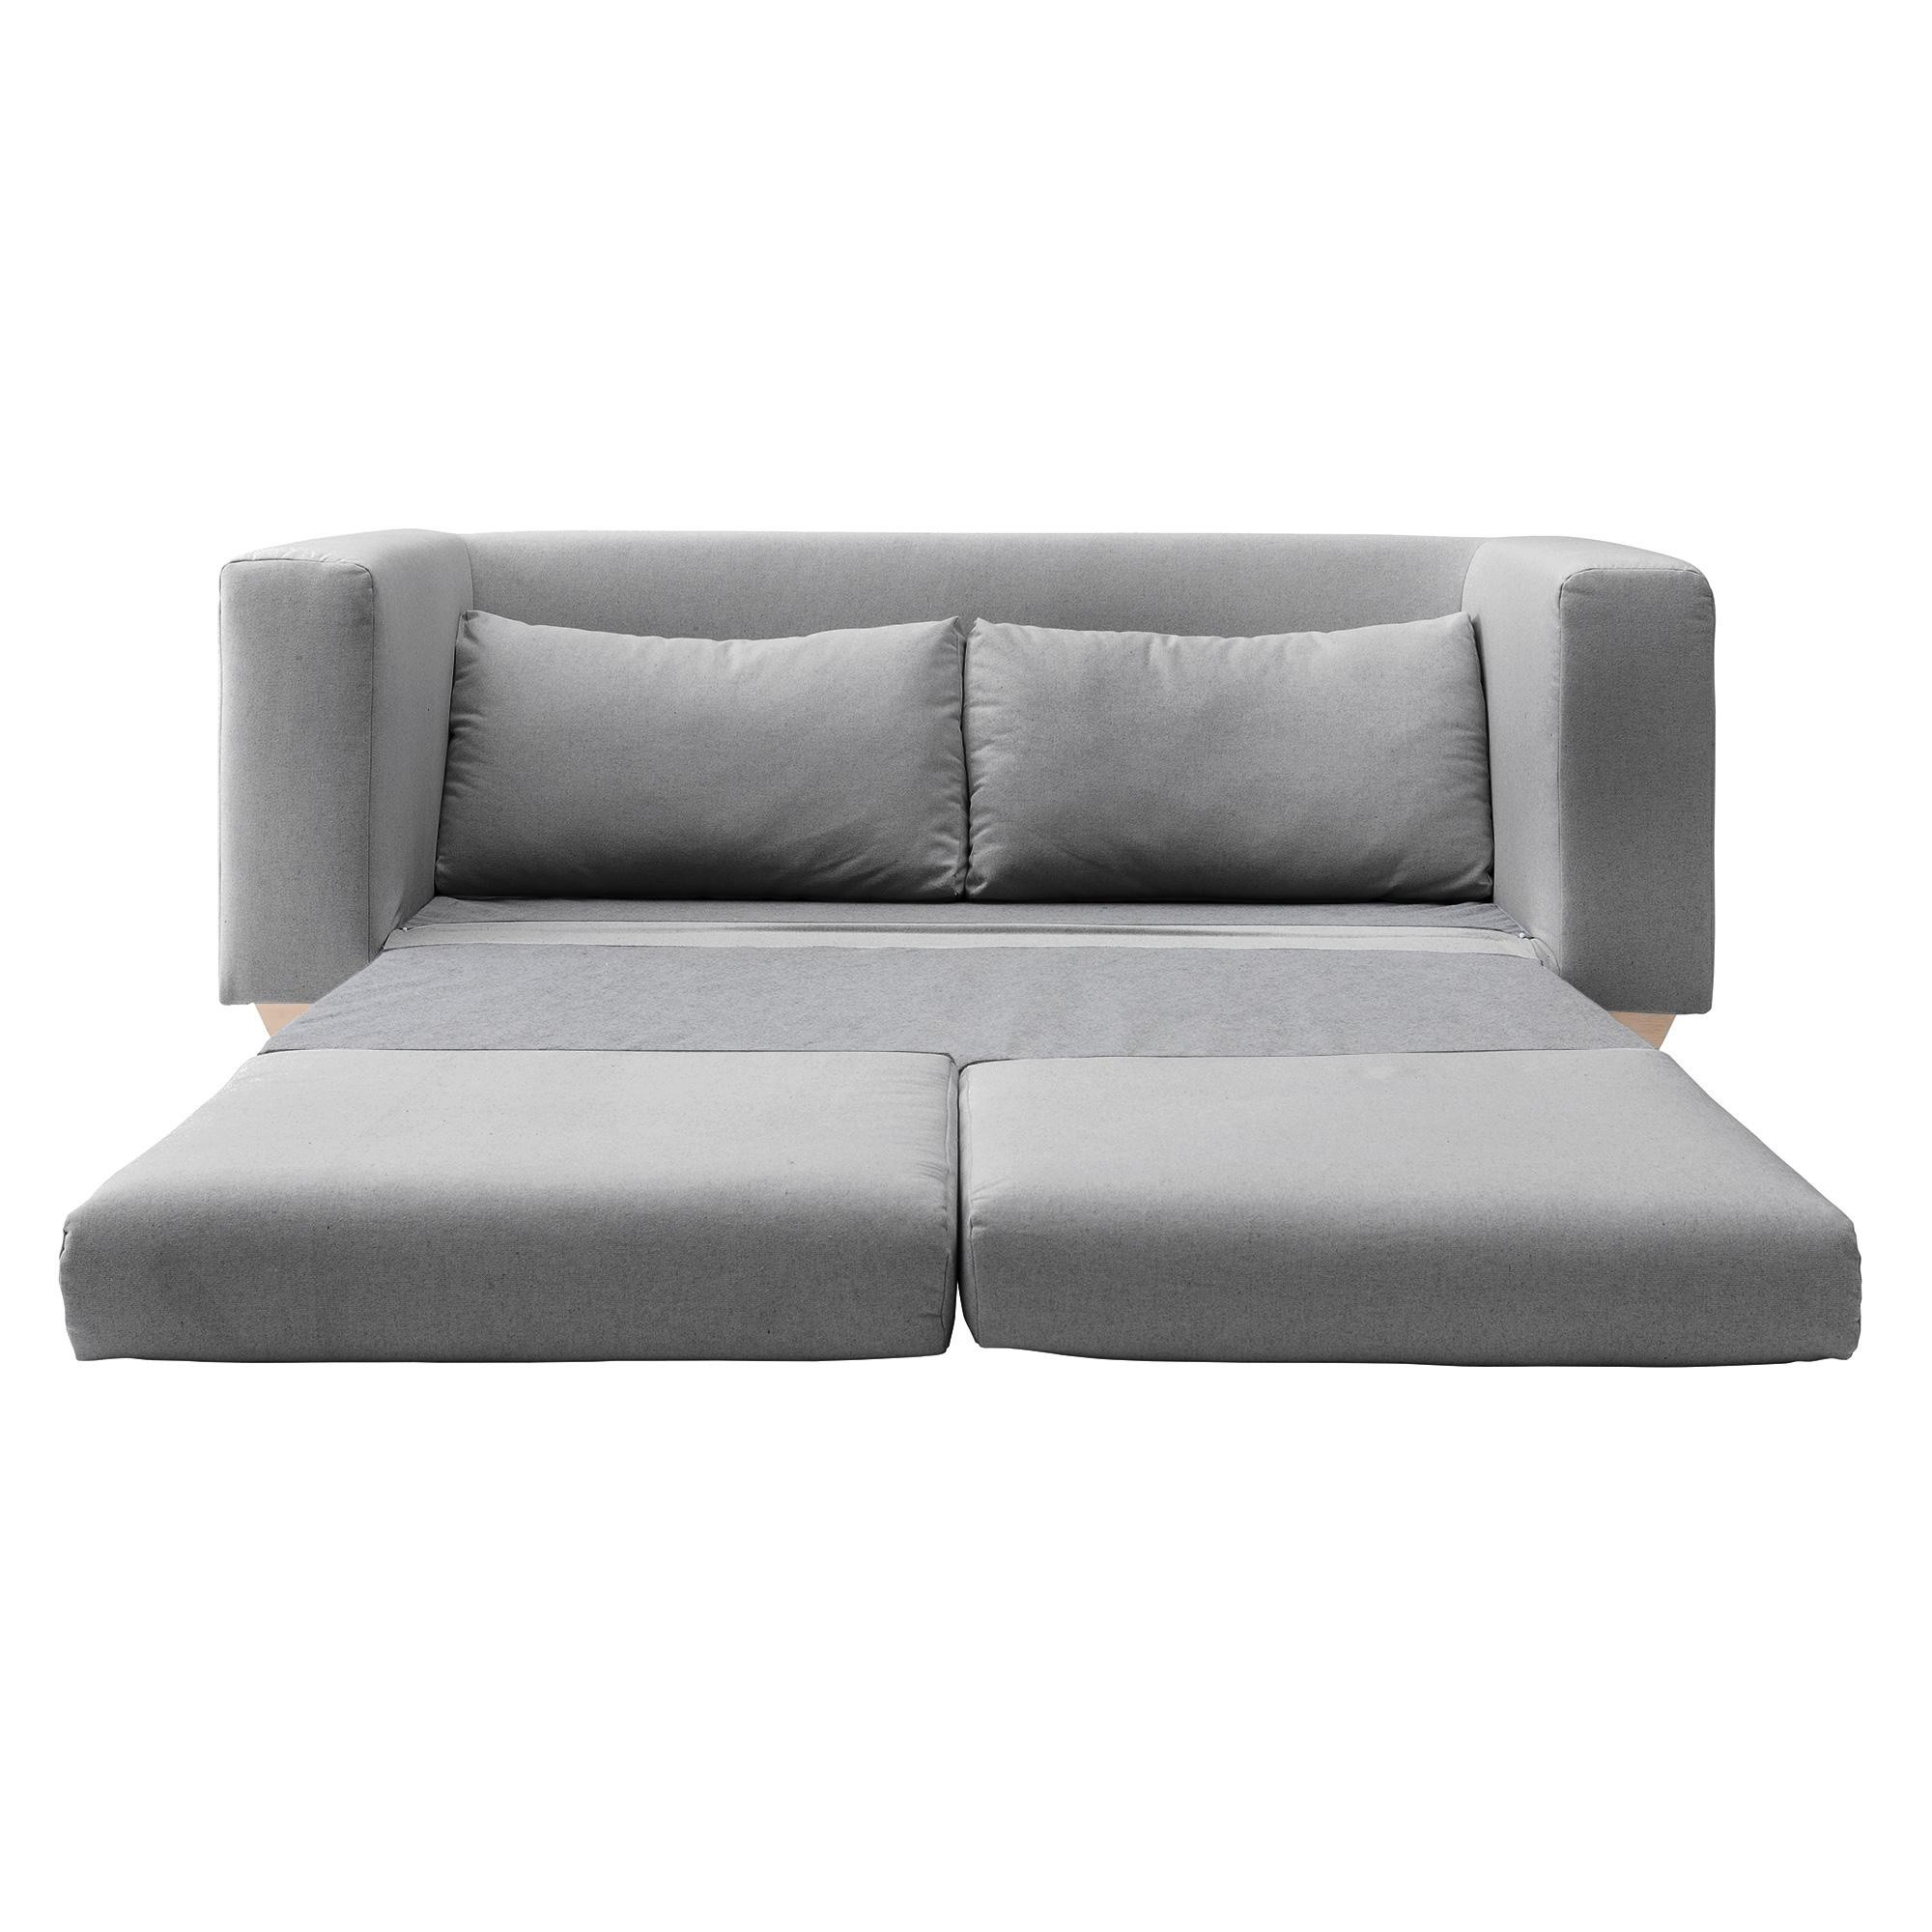 Softline Schlafsofa Victor Sofa Bed